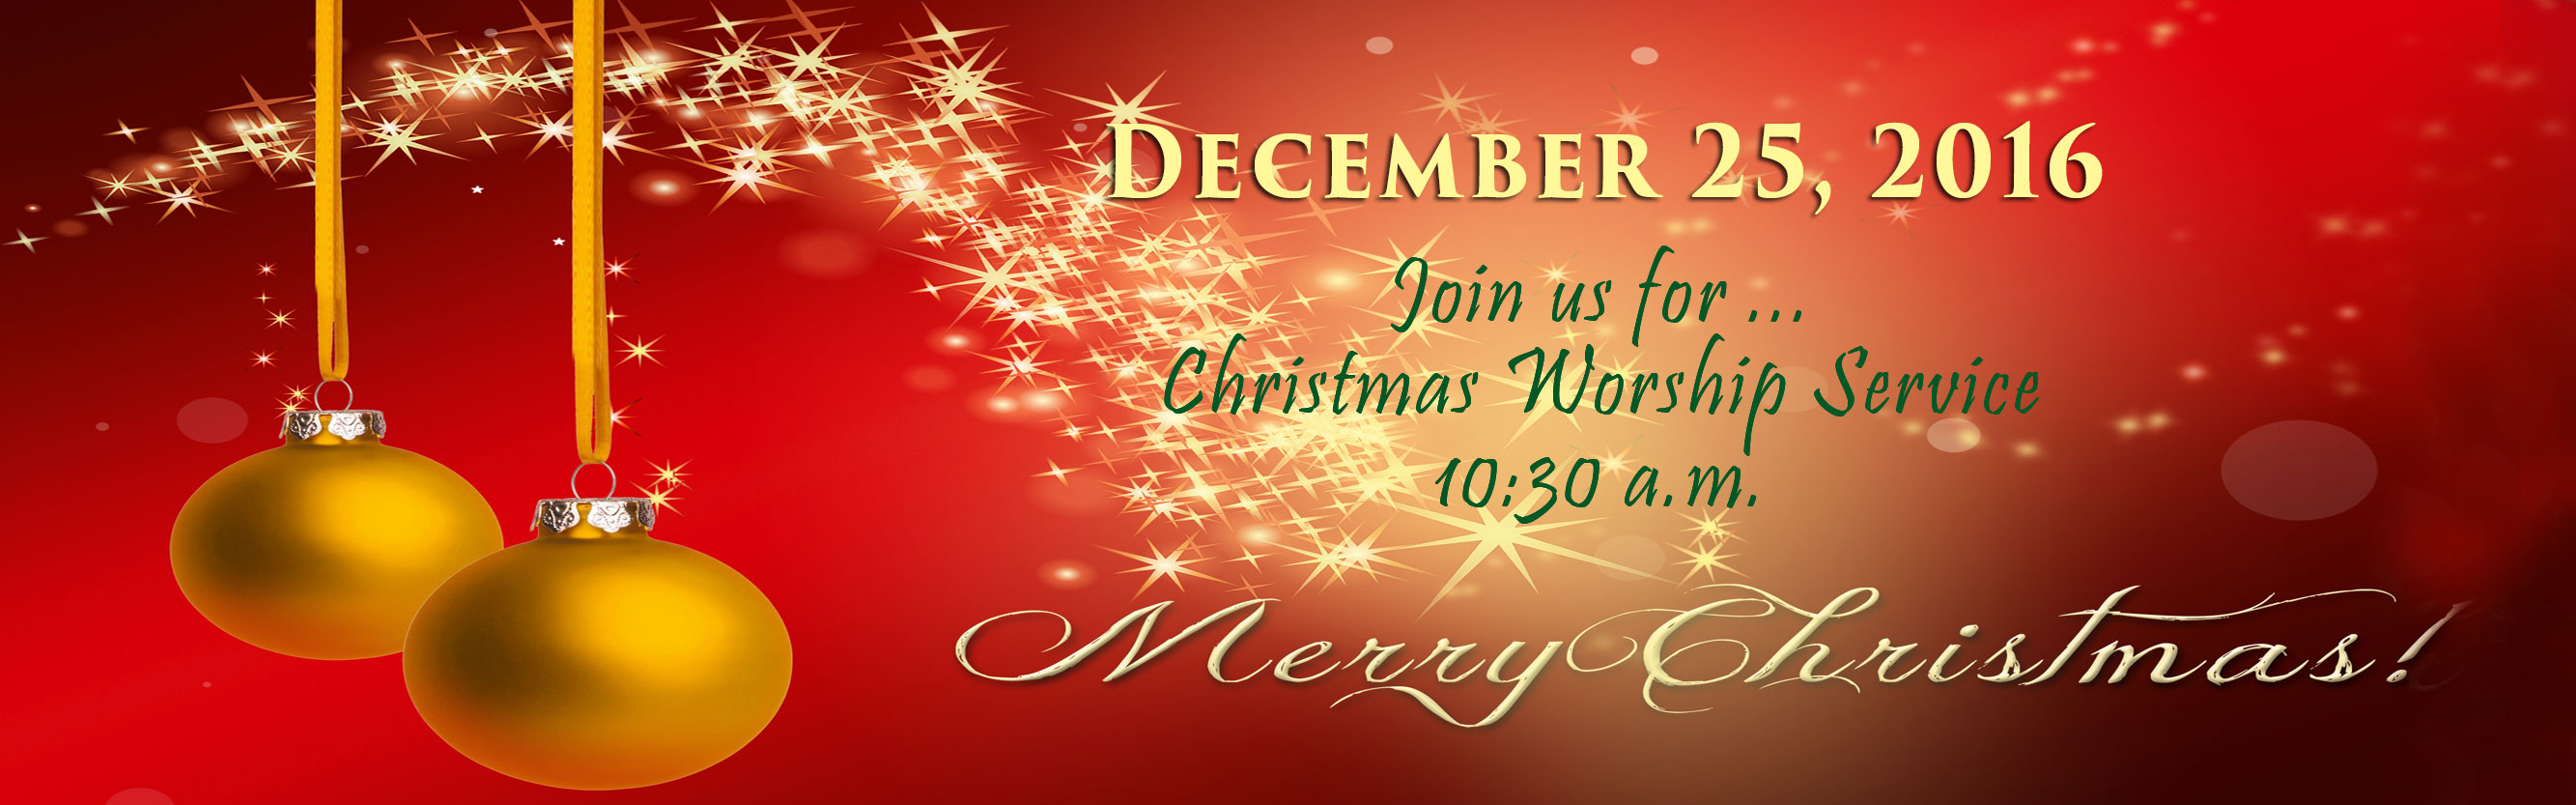 Merry Christmas Worship Service - Sunday Church Service - Inglewood First Presbyterian